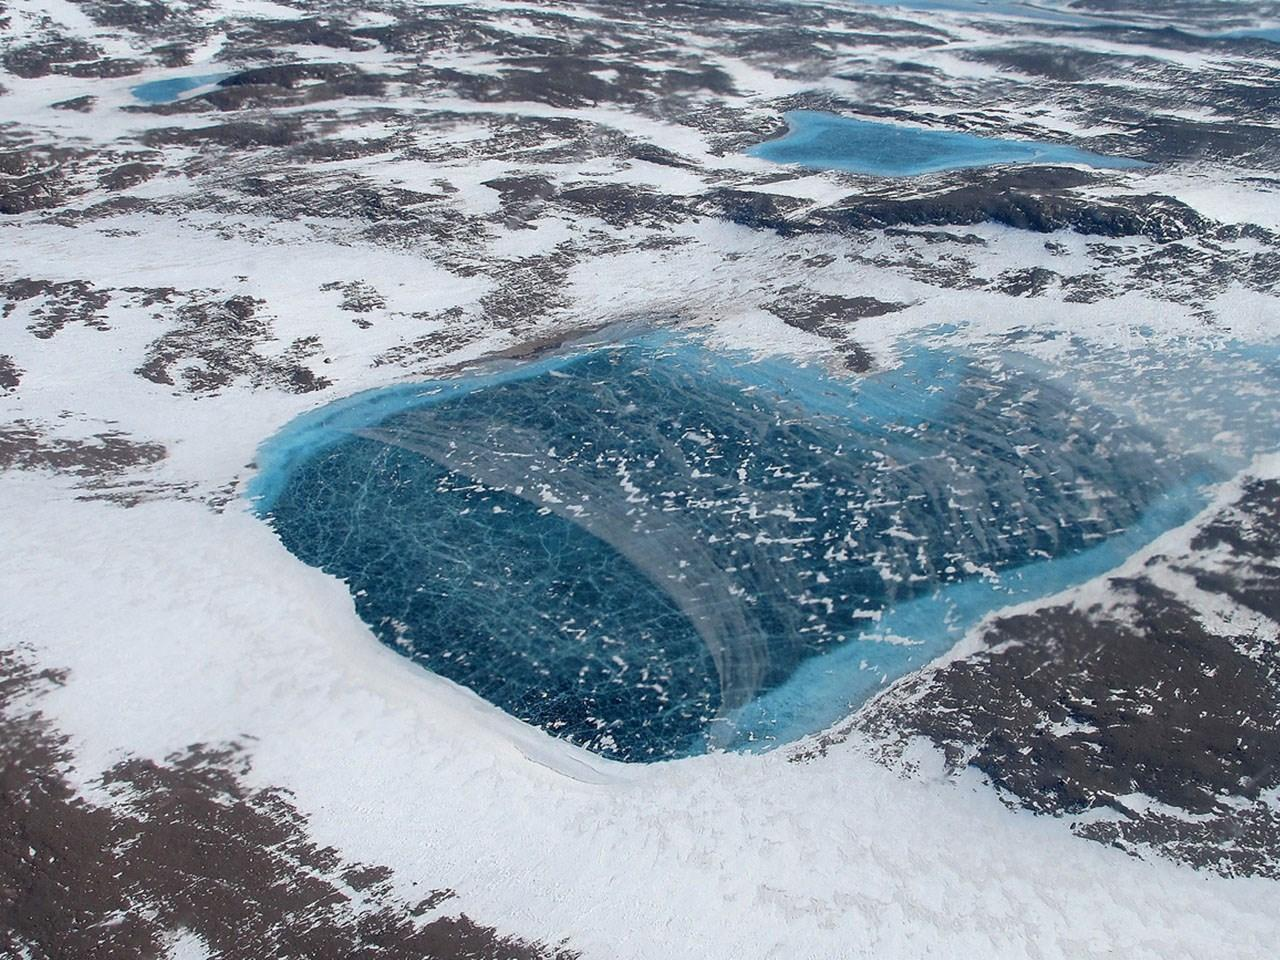 Frozen Greenland meltpond, Photo Date: May 2012 (NASA Goddard Space Flight Center / MGN)